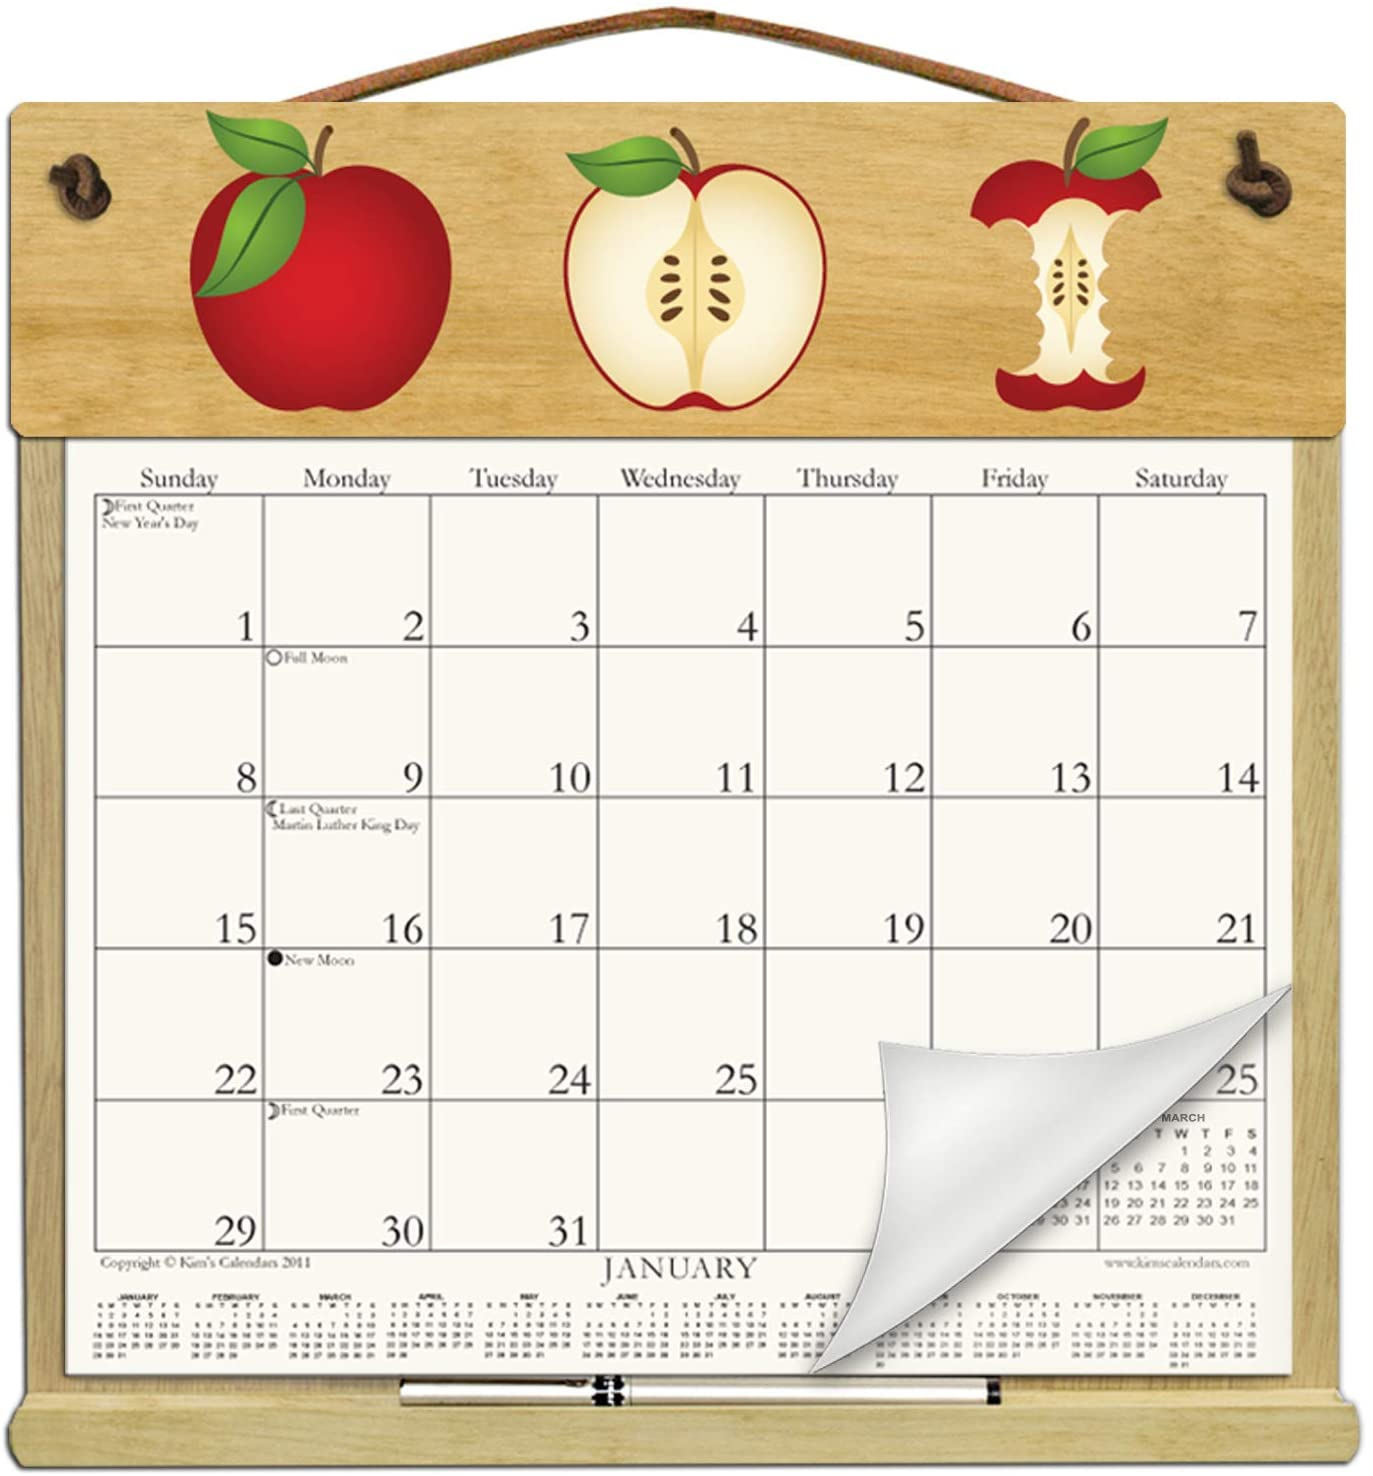 Wooden Refillable Calendar Holder Filled with 2020 & 2021 and Includes an Order Form Page for 2022-APPLES